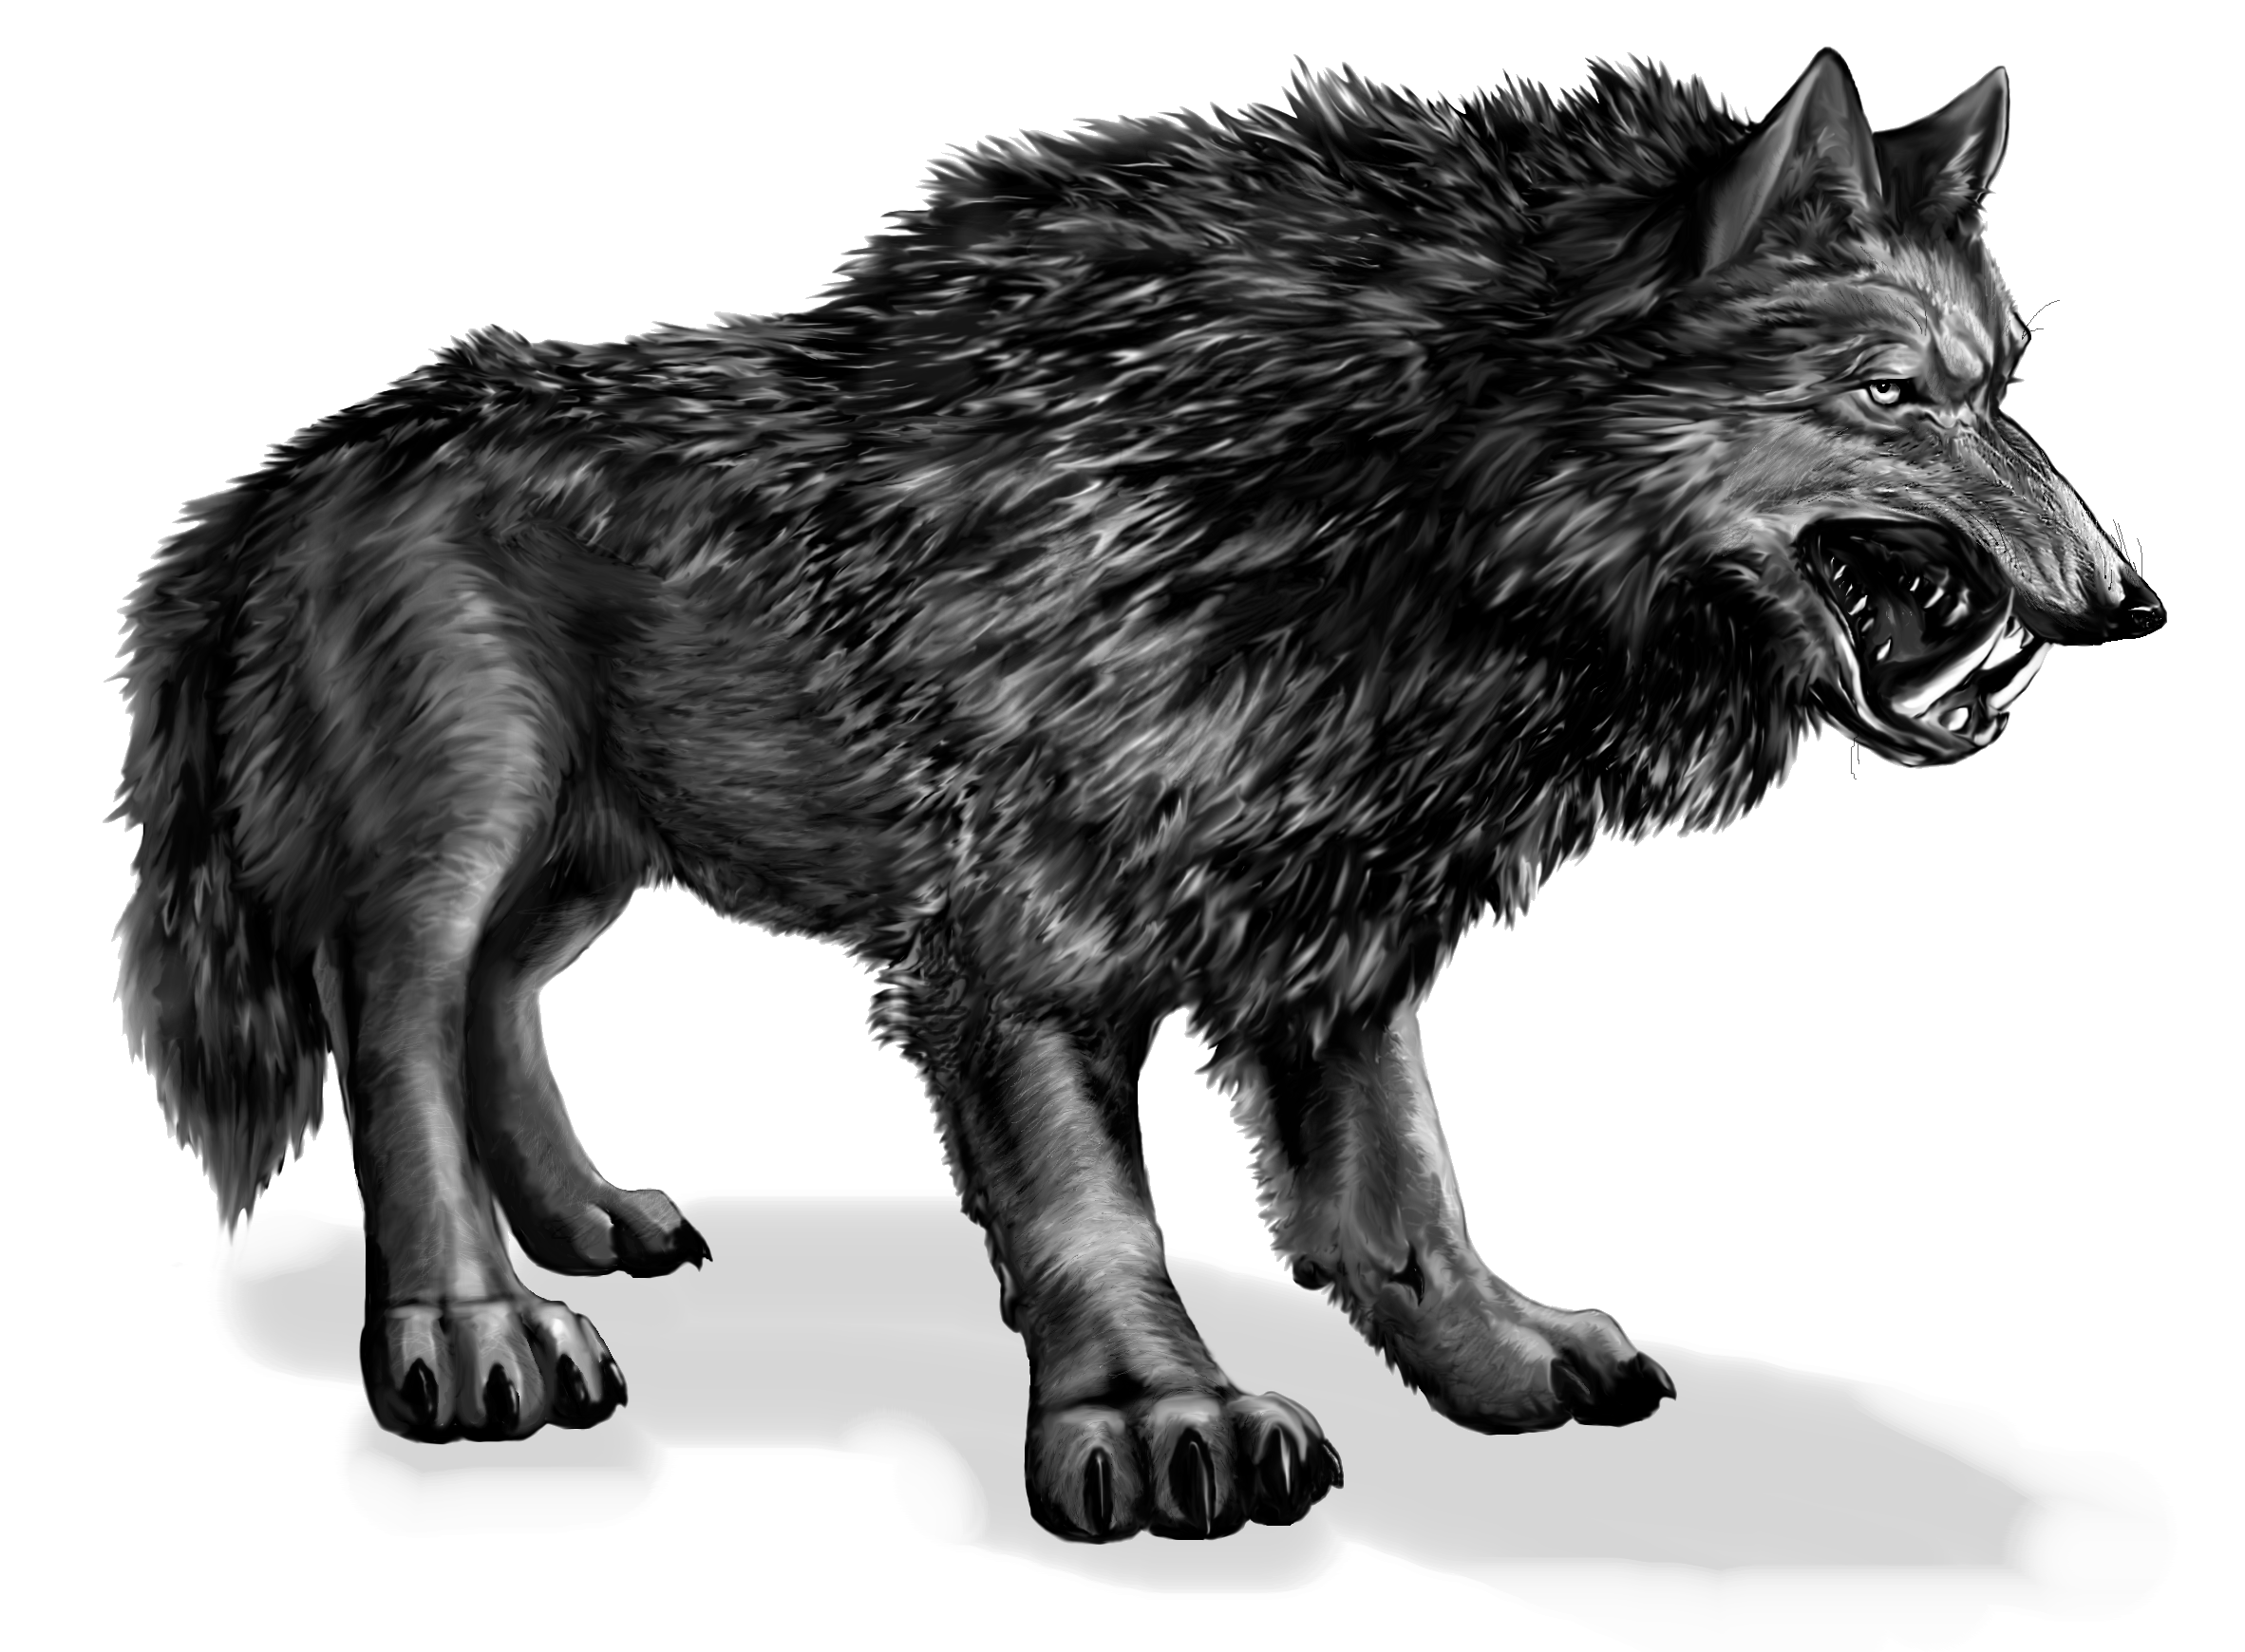 dire_wolf_by_feralkyn-d3cqc09.png